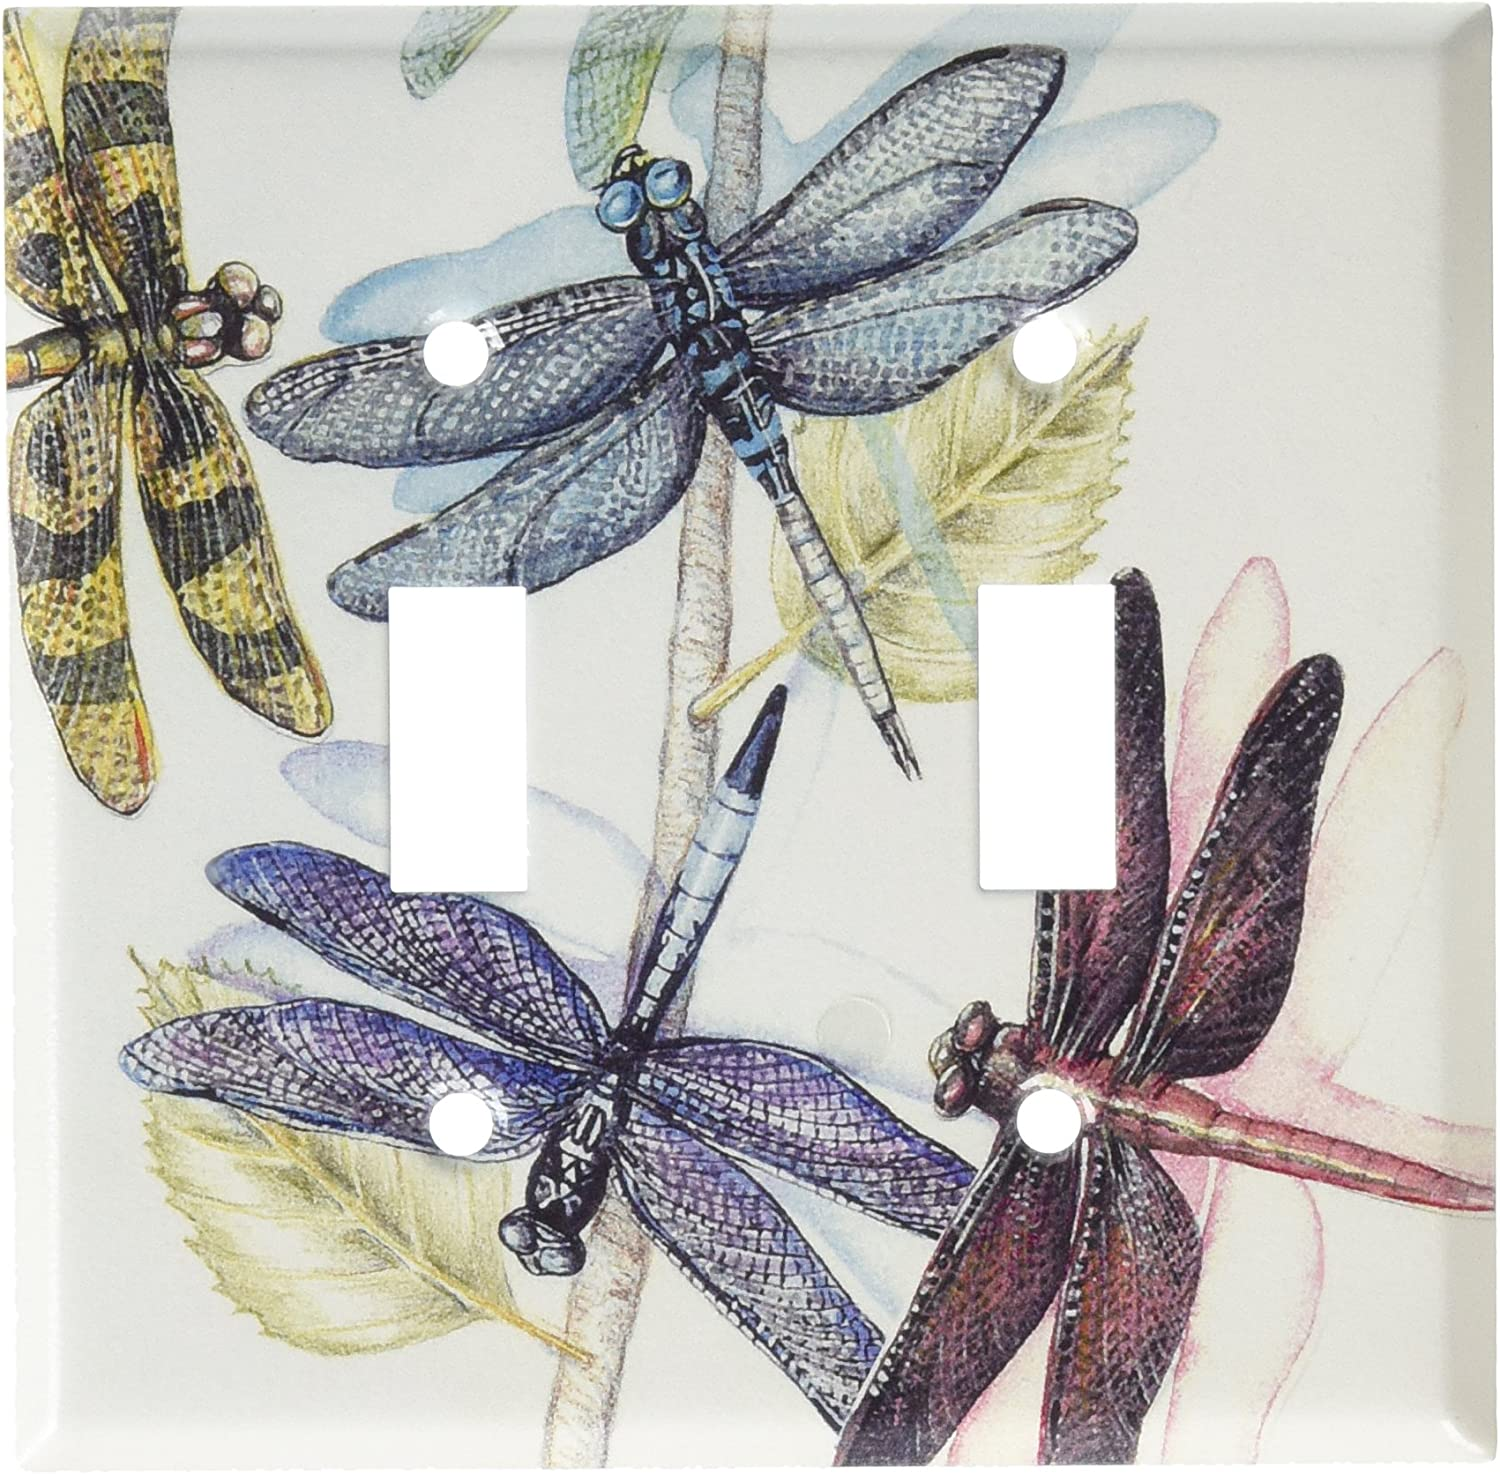 Dragonflies Switch Plate NEW Art Plates Single Toggle FREE2DAYSHIP TAXFREE